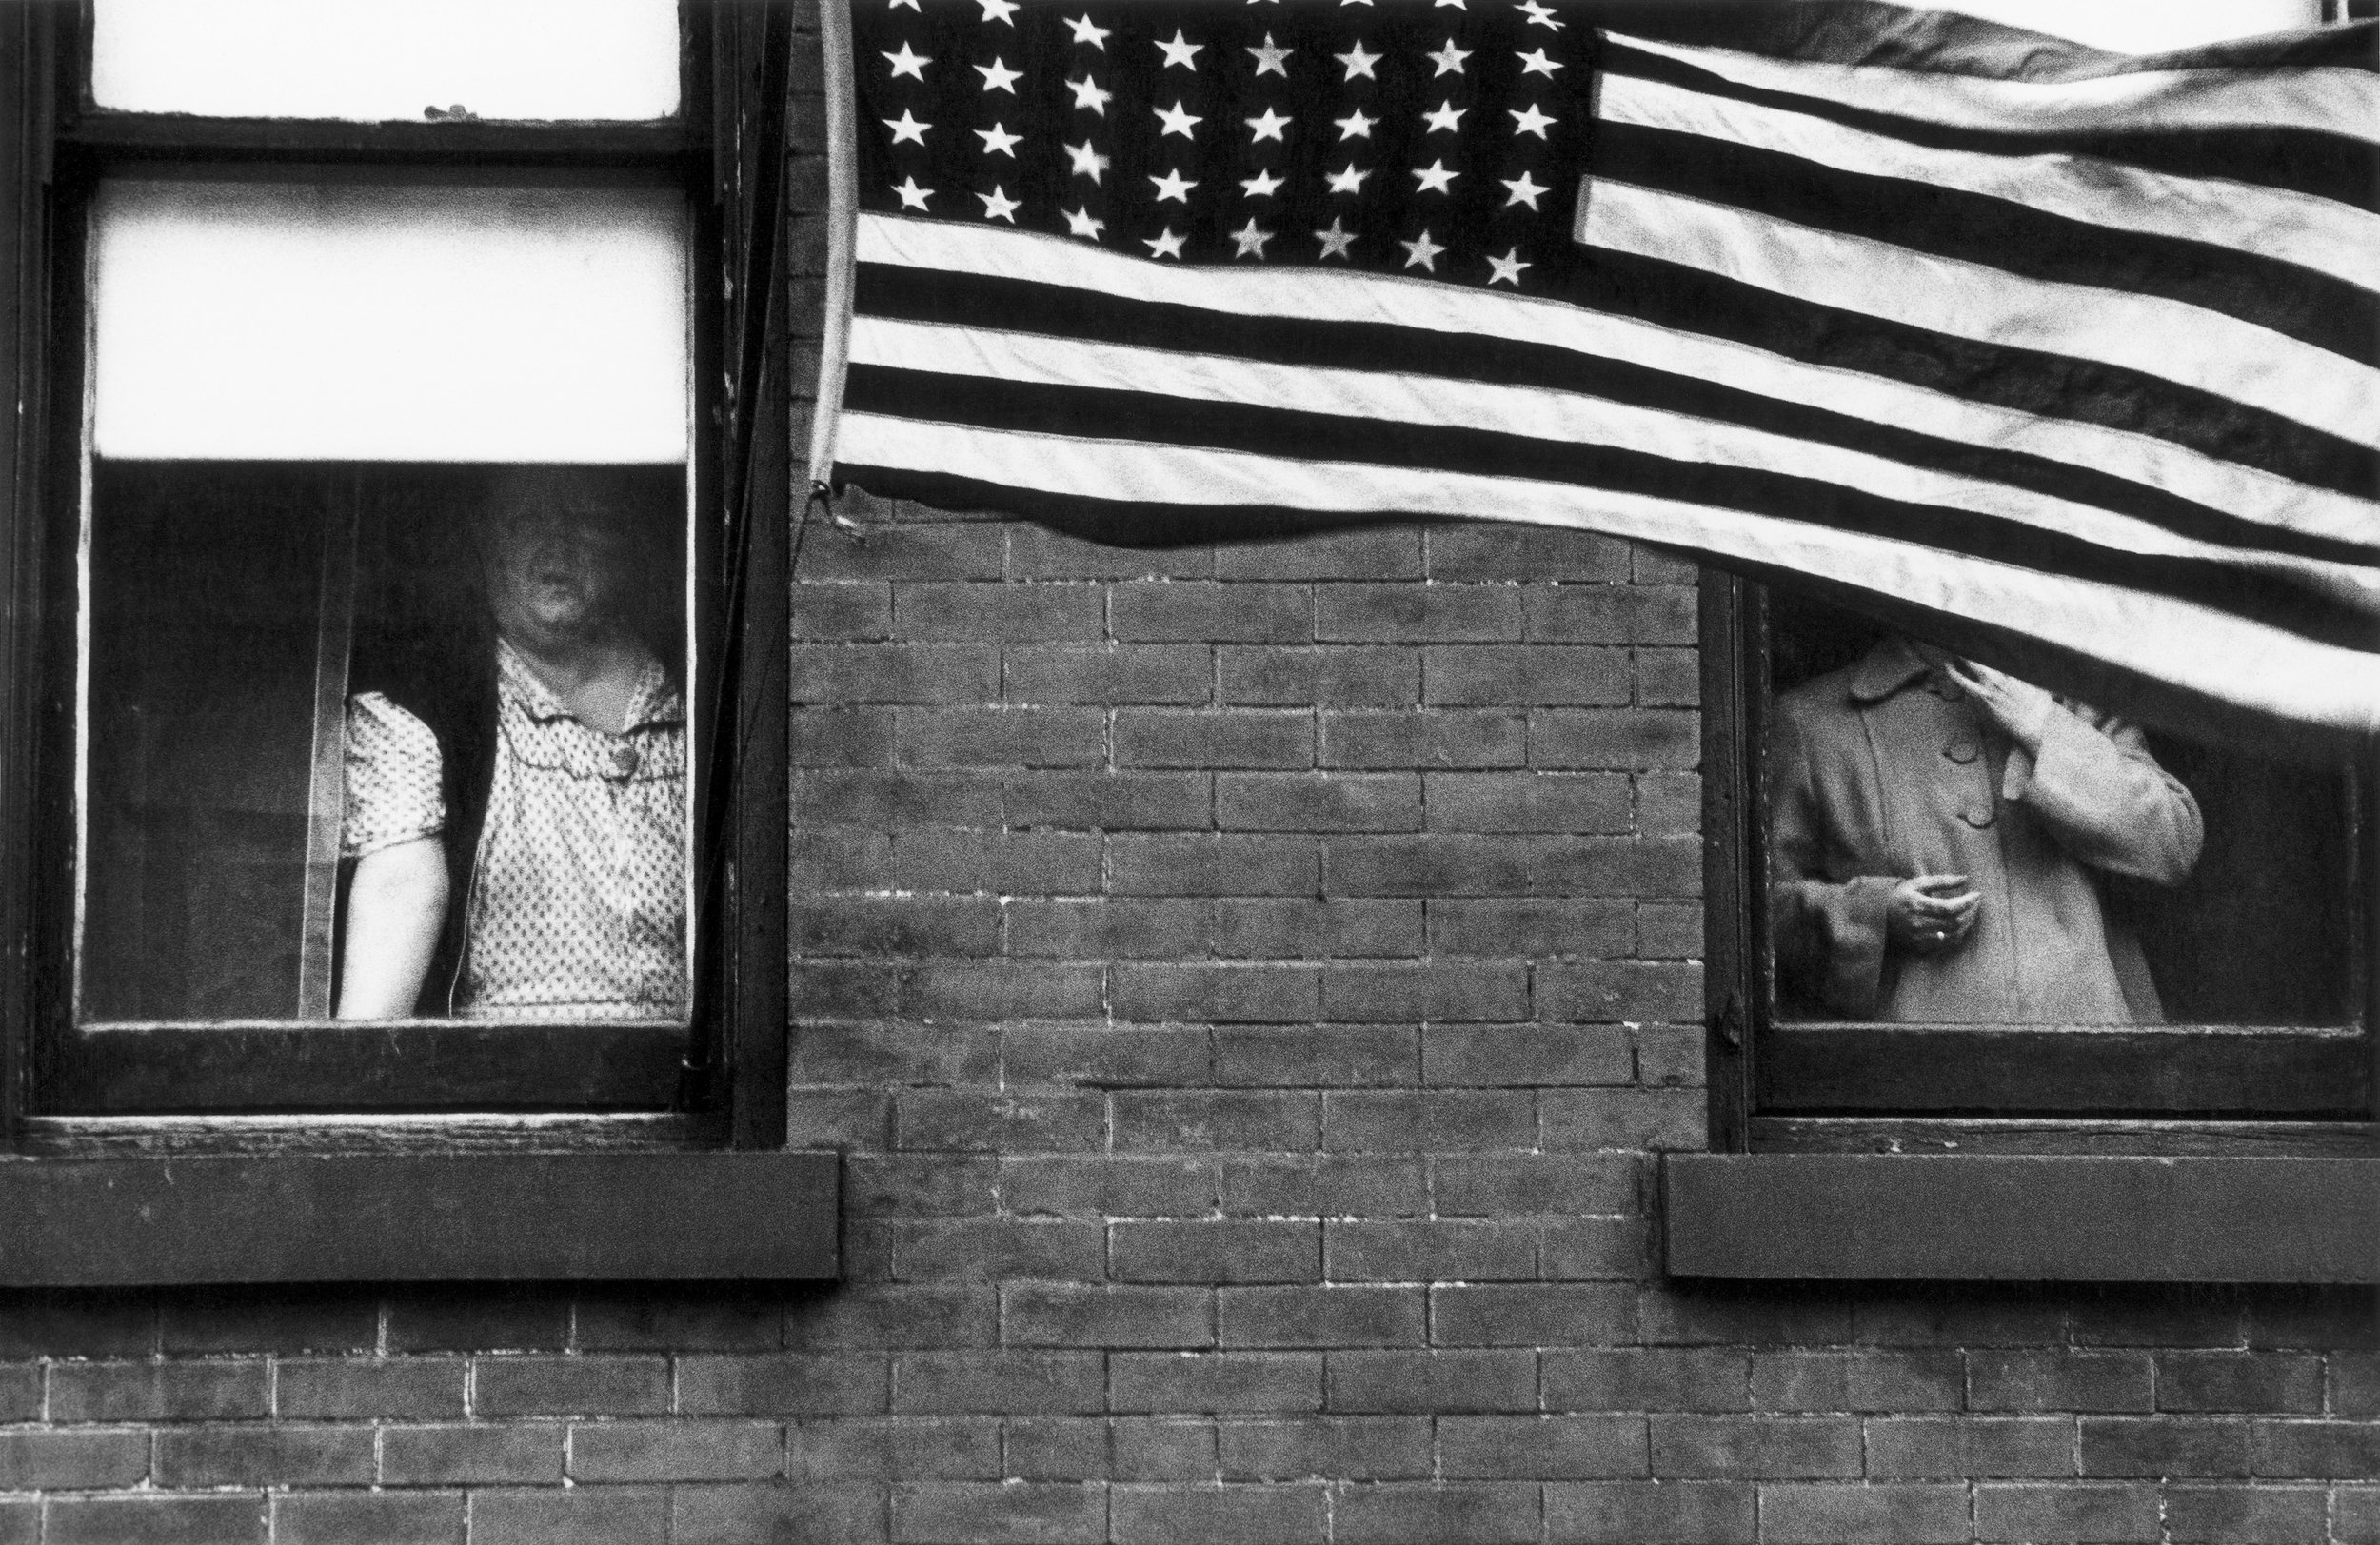 Parade – Hoboken, New Jersey, 1955 © Robert Frank from The Americans, courtesy Pace/MacGill